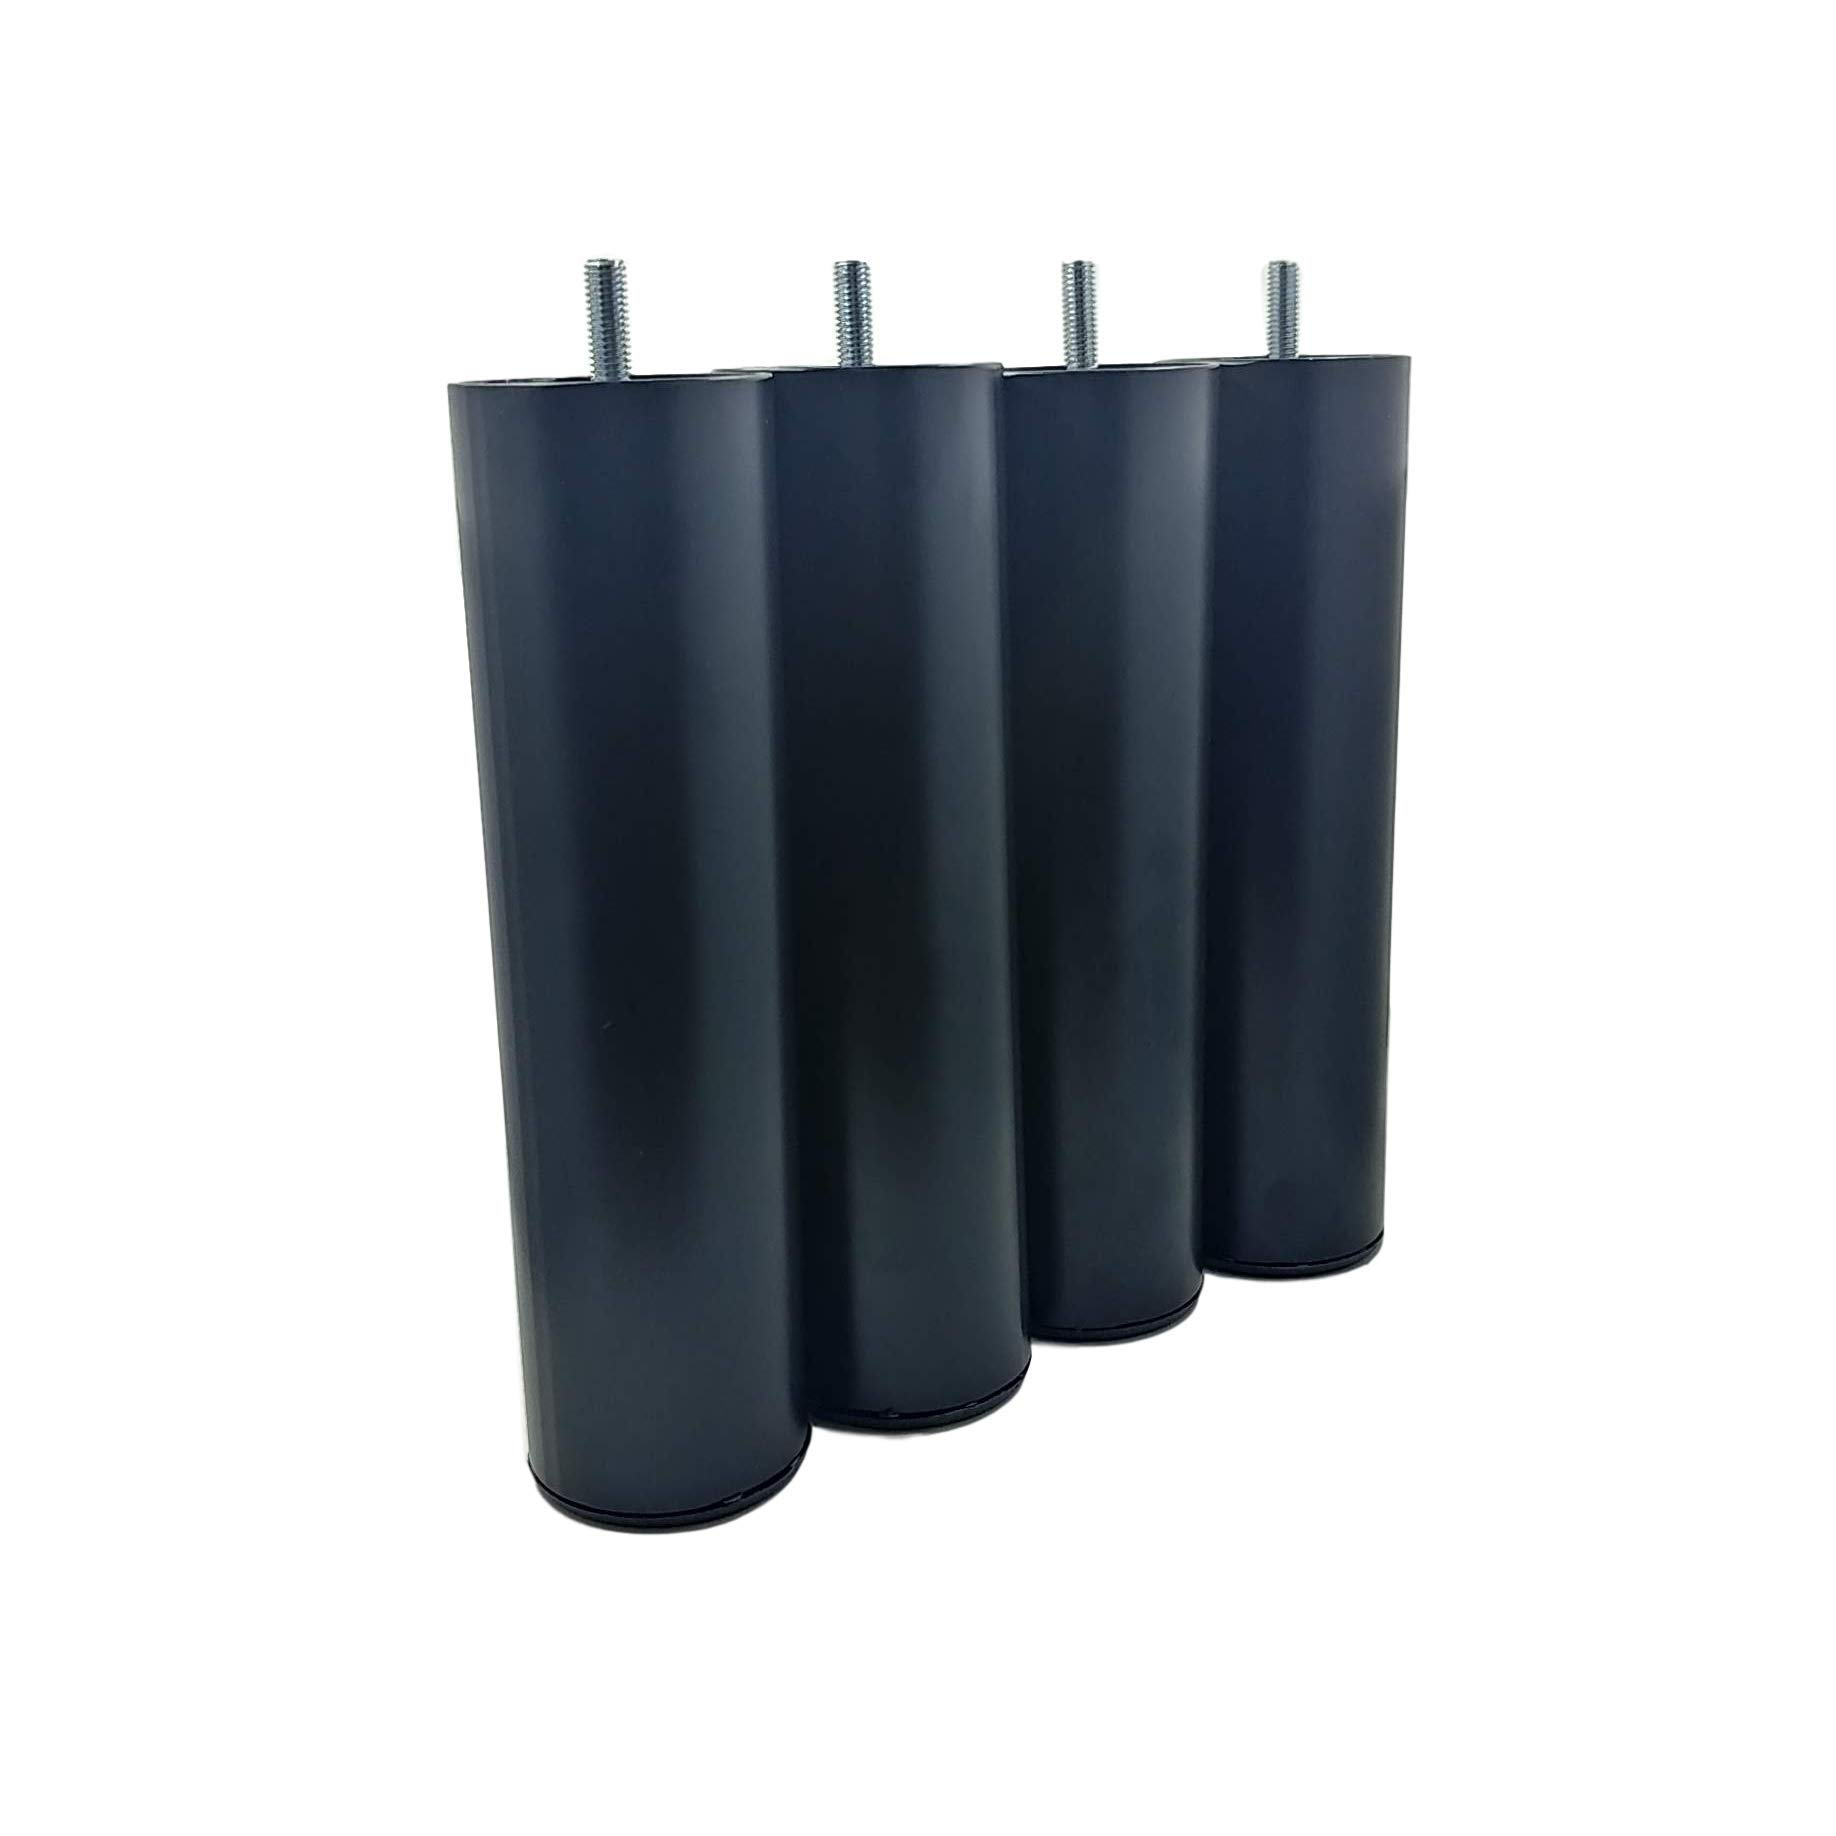 Legs for Ergomotion Adjustable Bed Bases (Sold in sets of 4) Pick size and Type! Black Powder Coated 9'' Legs